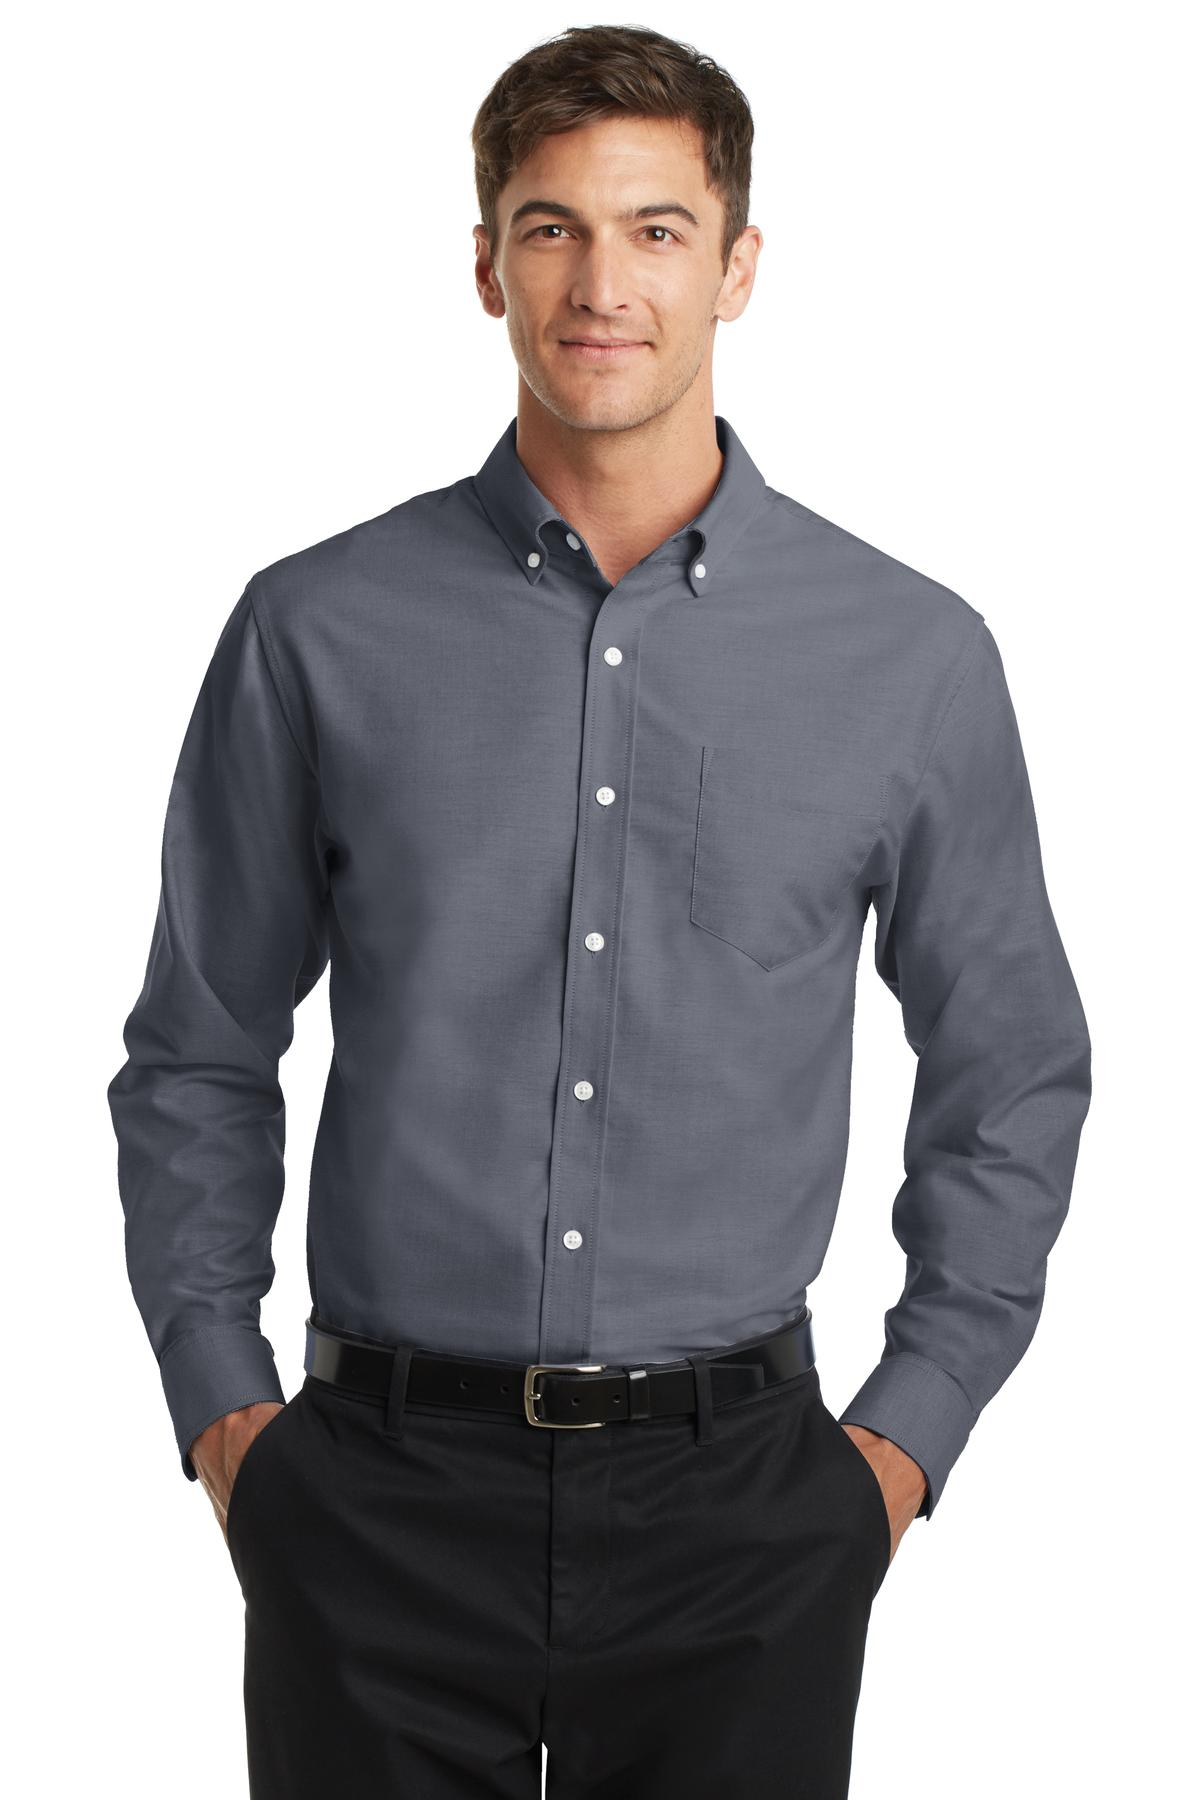 Stone Port Authority Tall Silk Touch Polo.